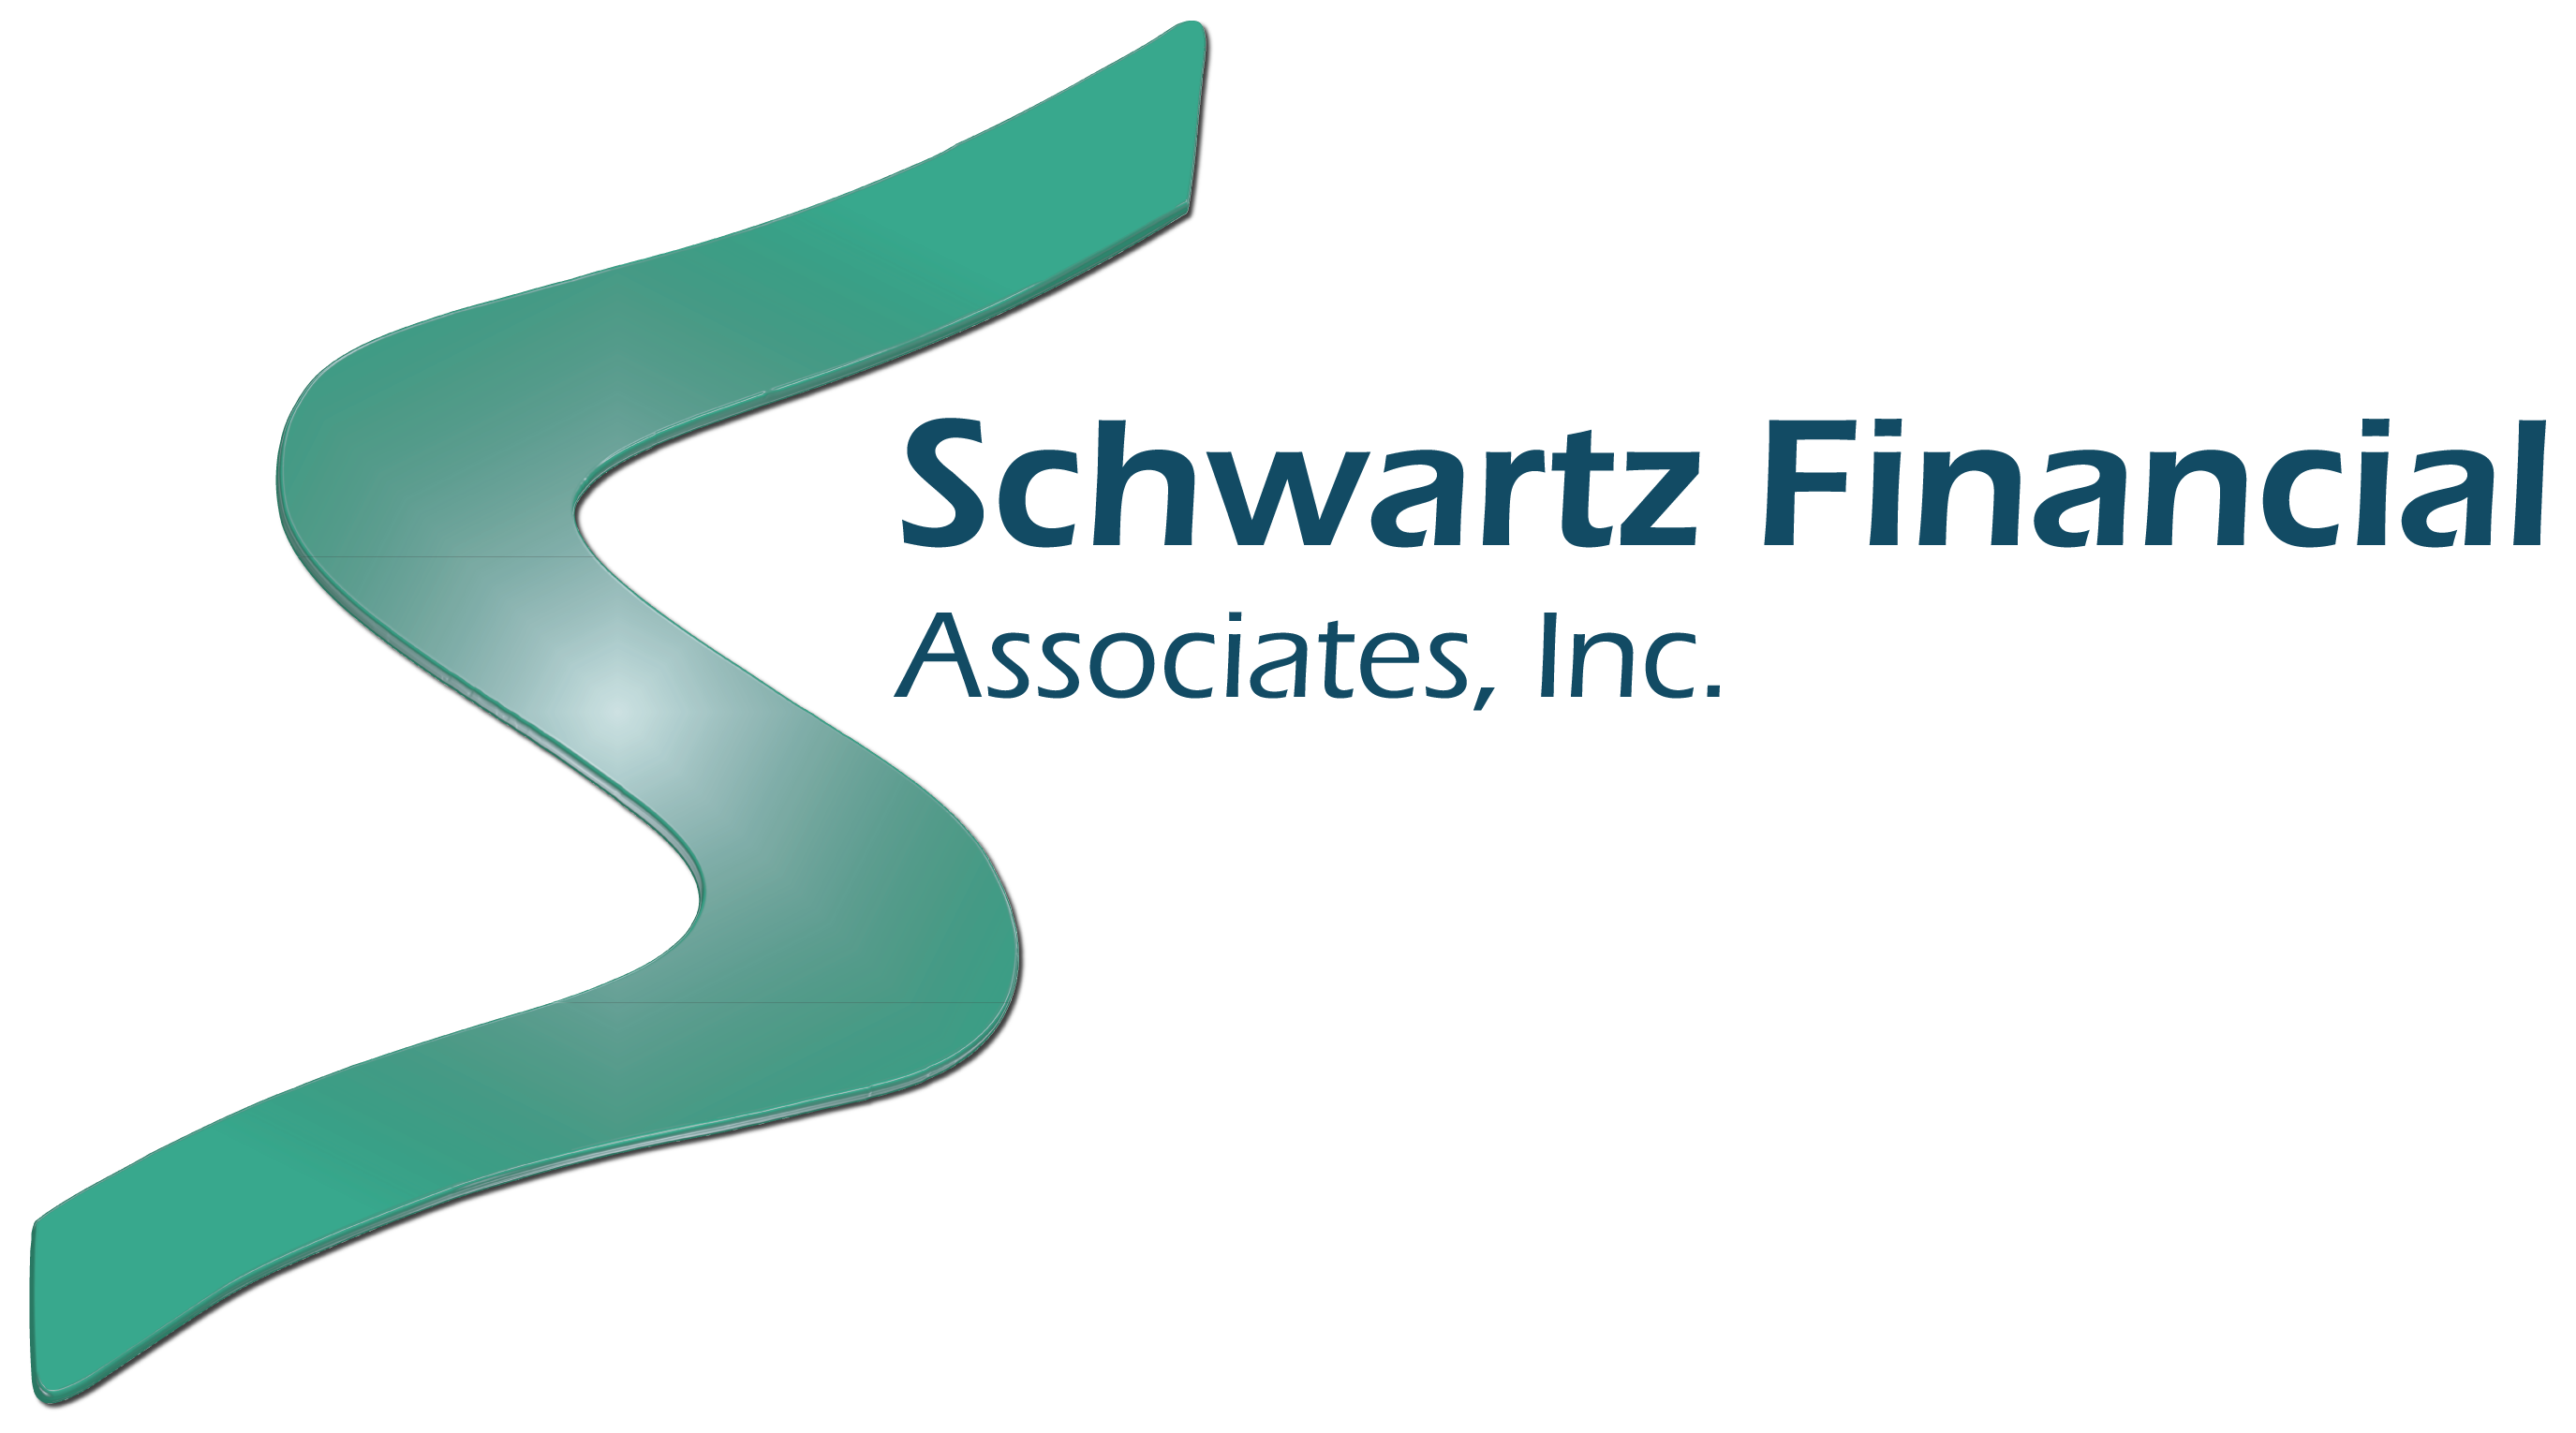 Schwartz Financial Associates, Inc